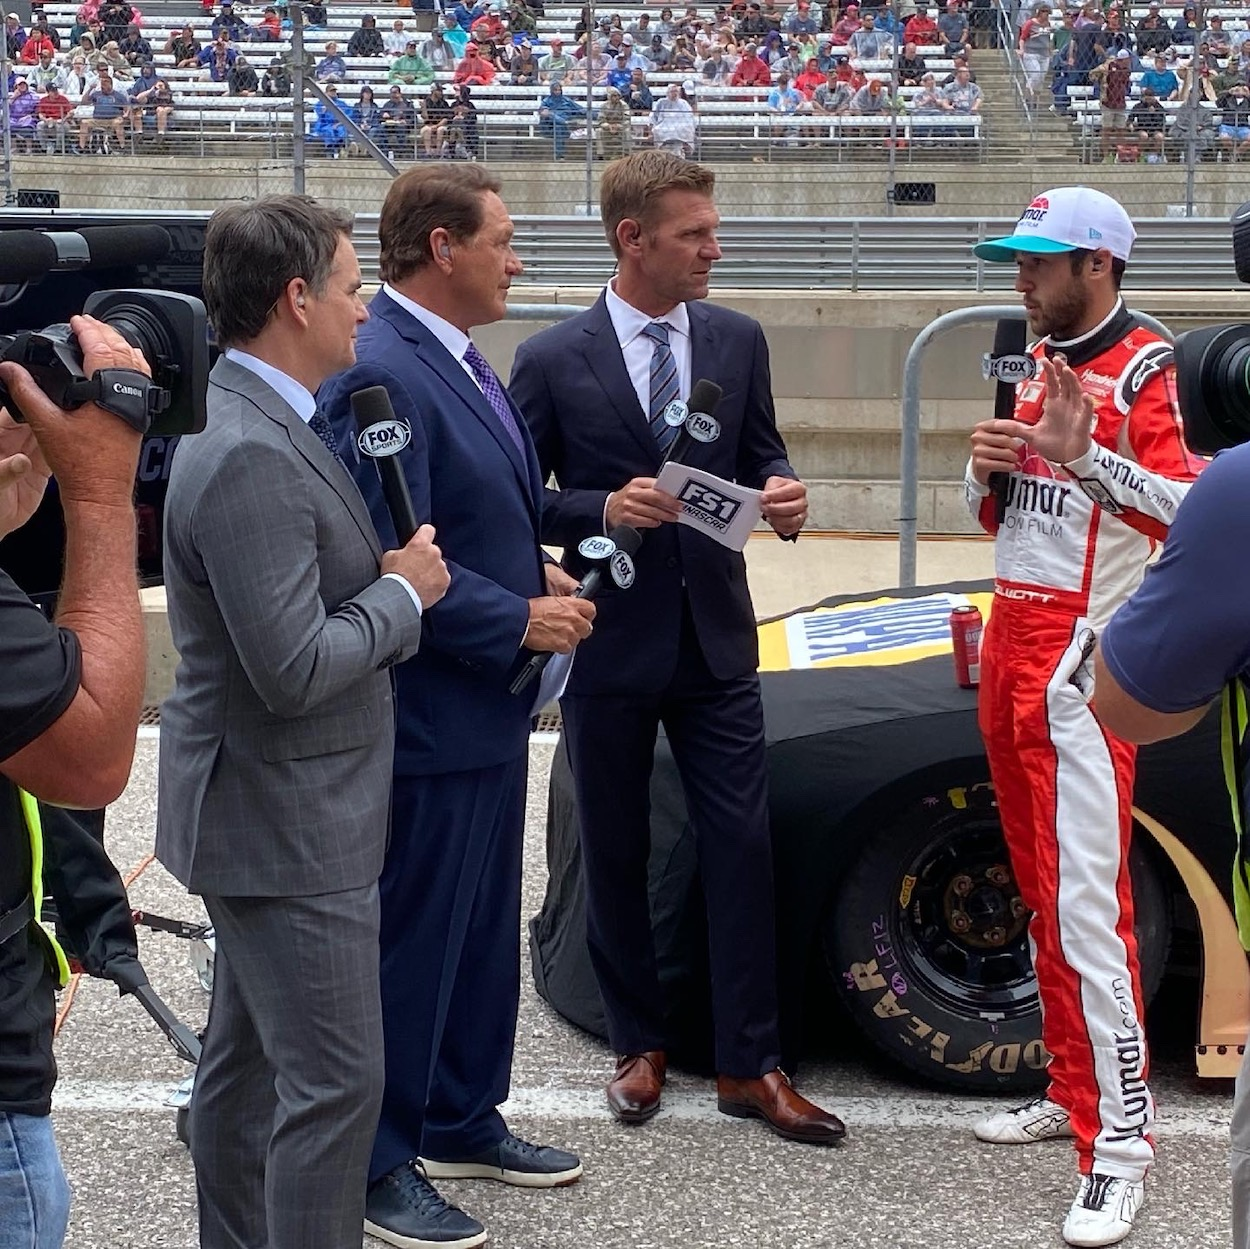 Clint Bowyer Candidly Admits He Was 'Super Bummed' Working With Jeff Gordon and Fox This Season